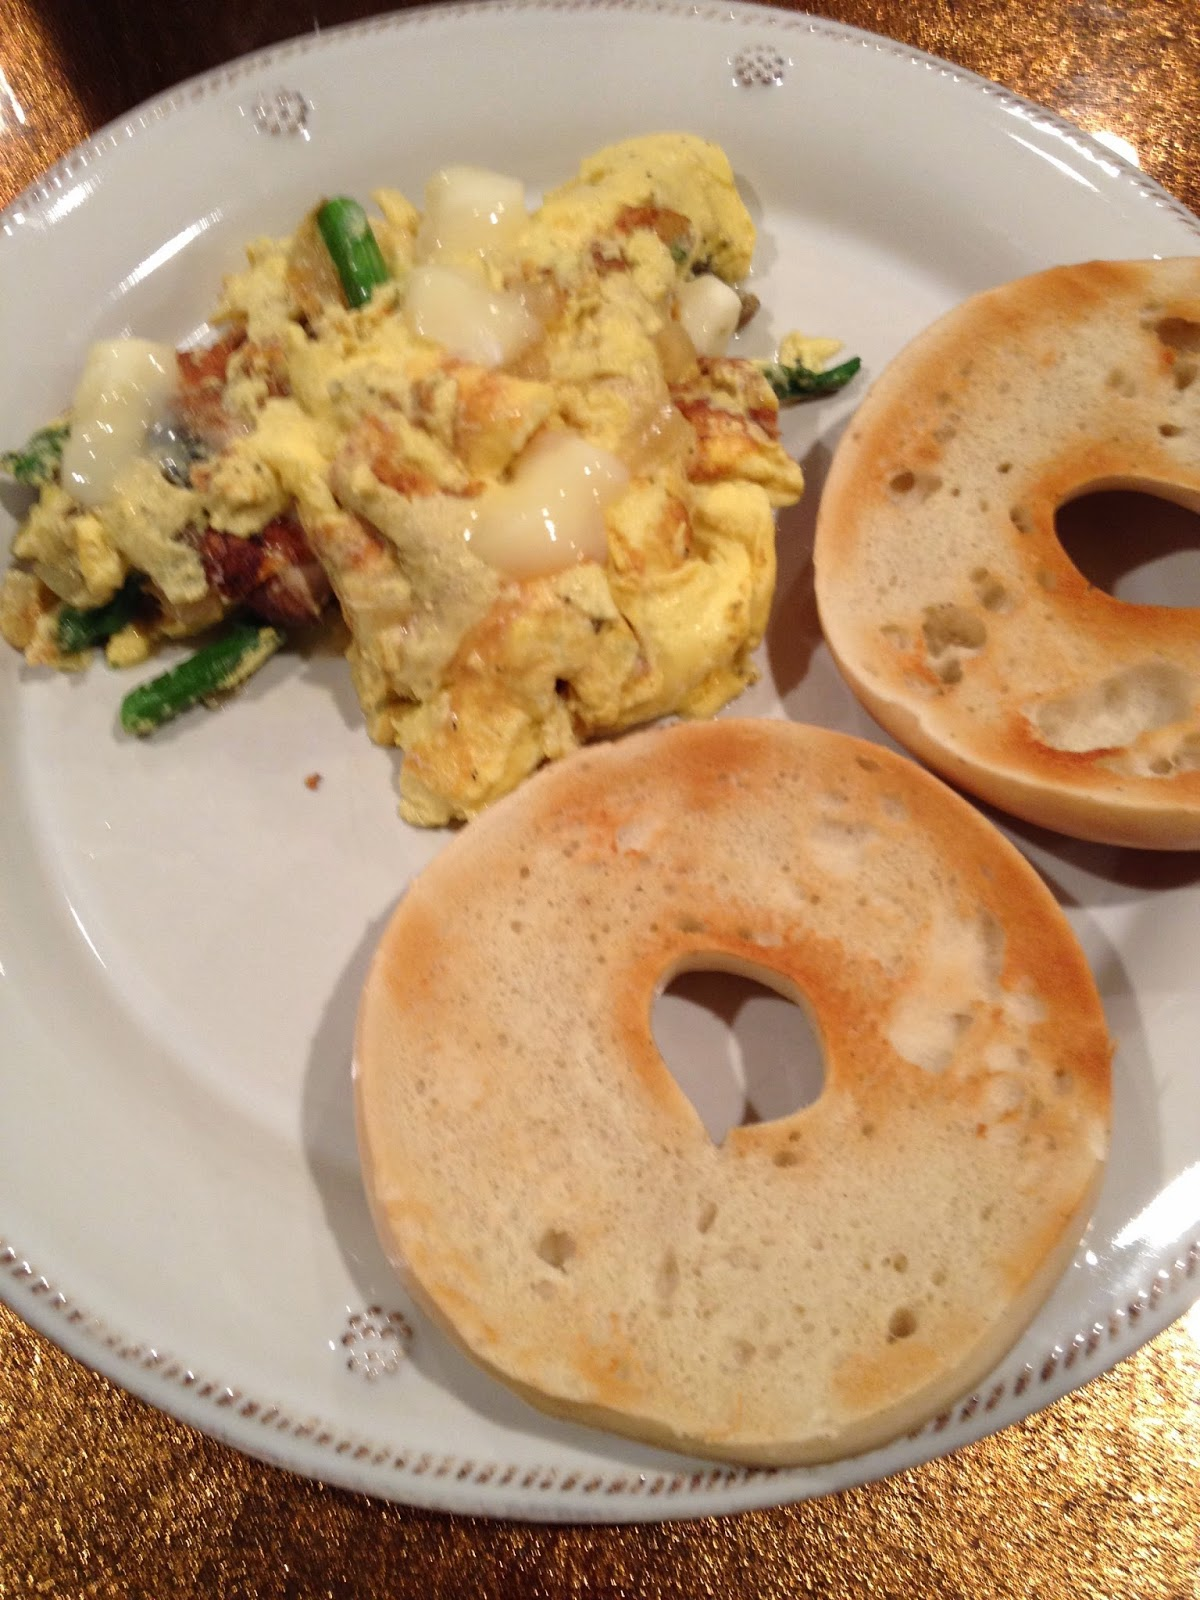 Asparagus-Mushroom-Omelette-with-Brie-cheese